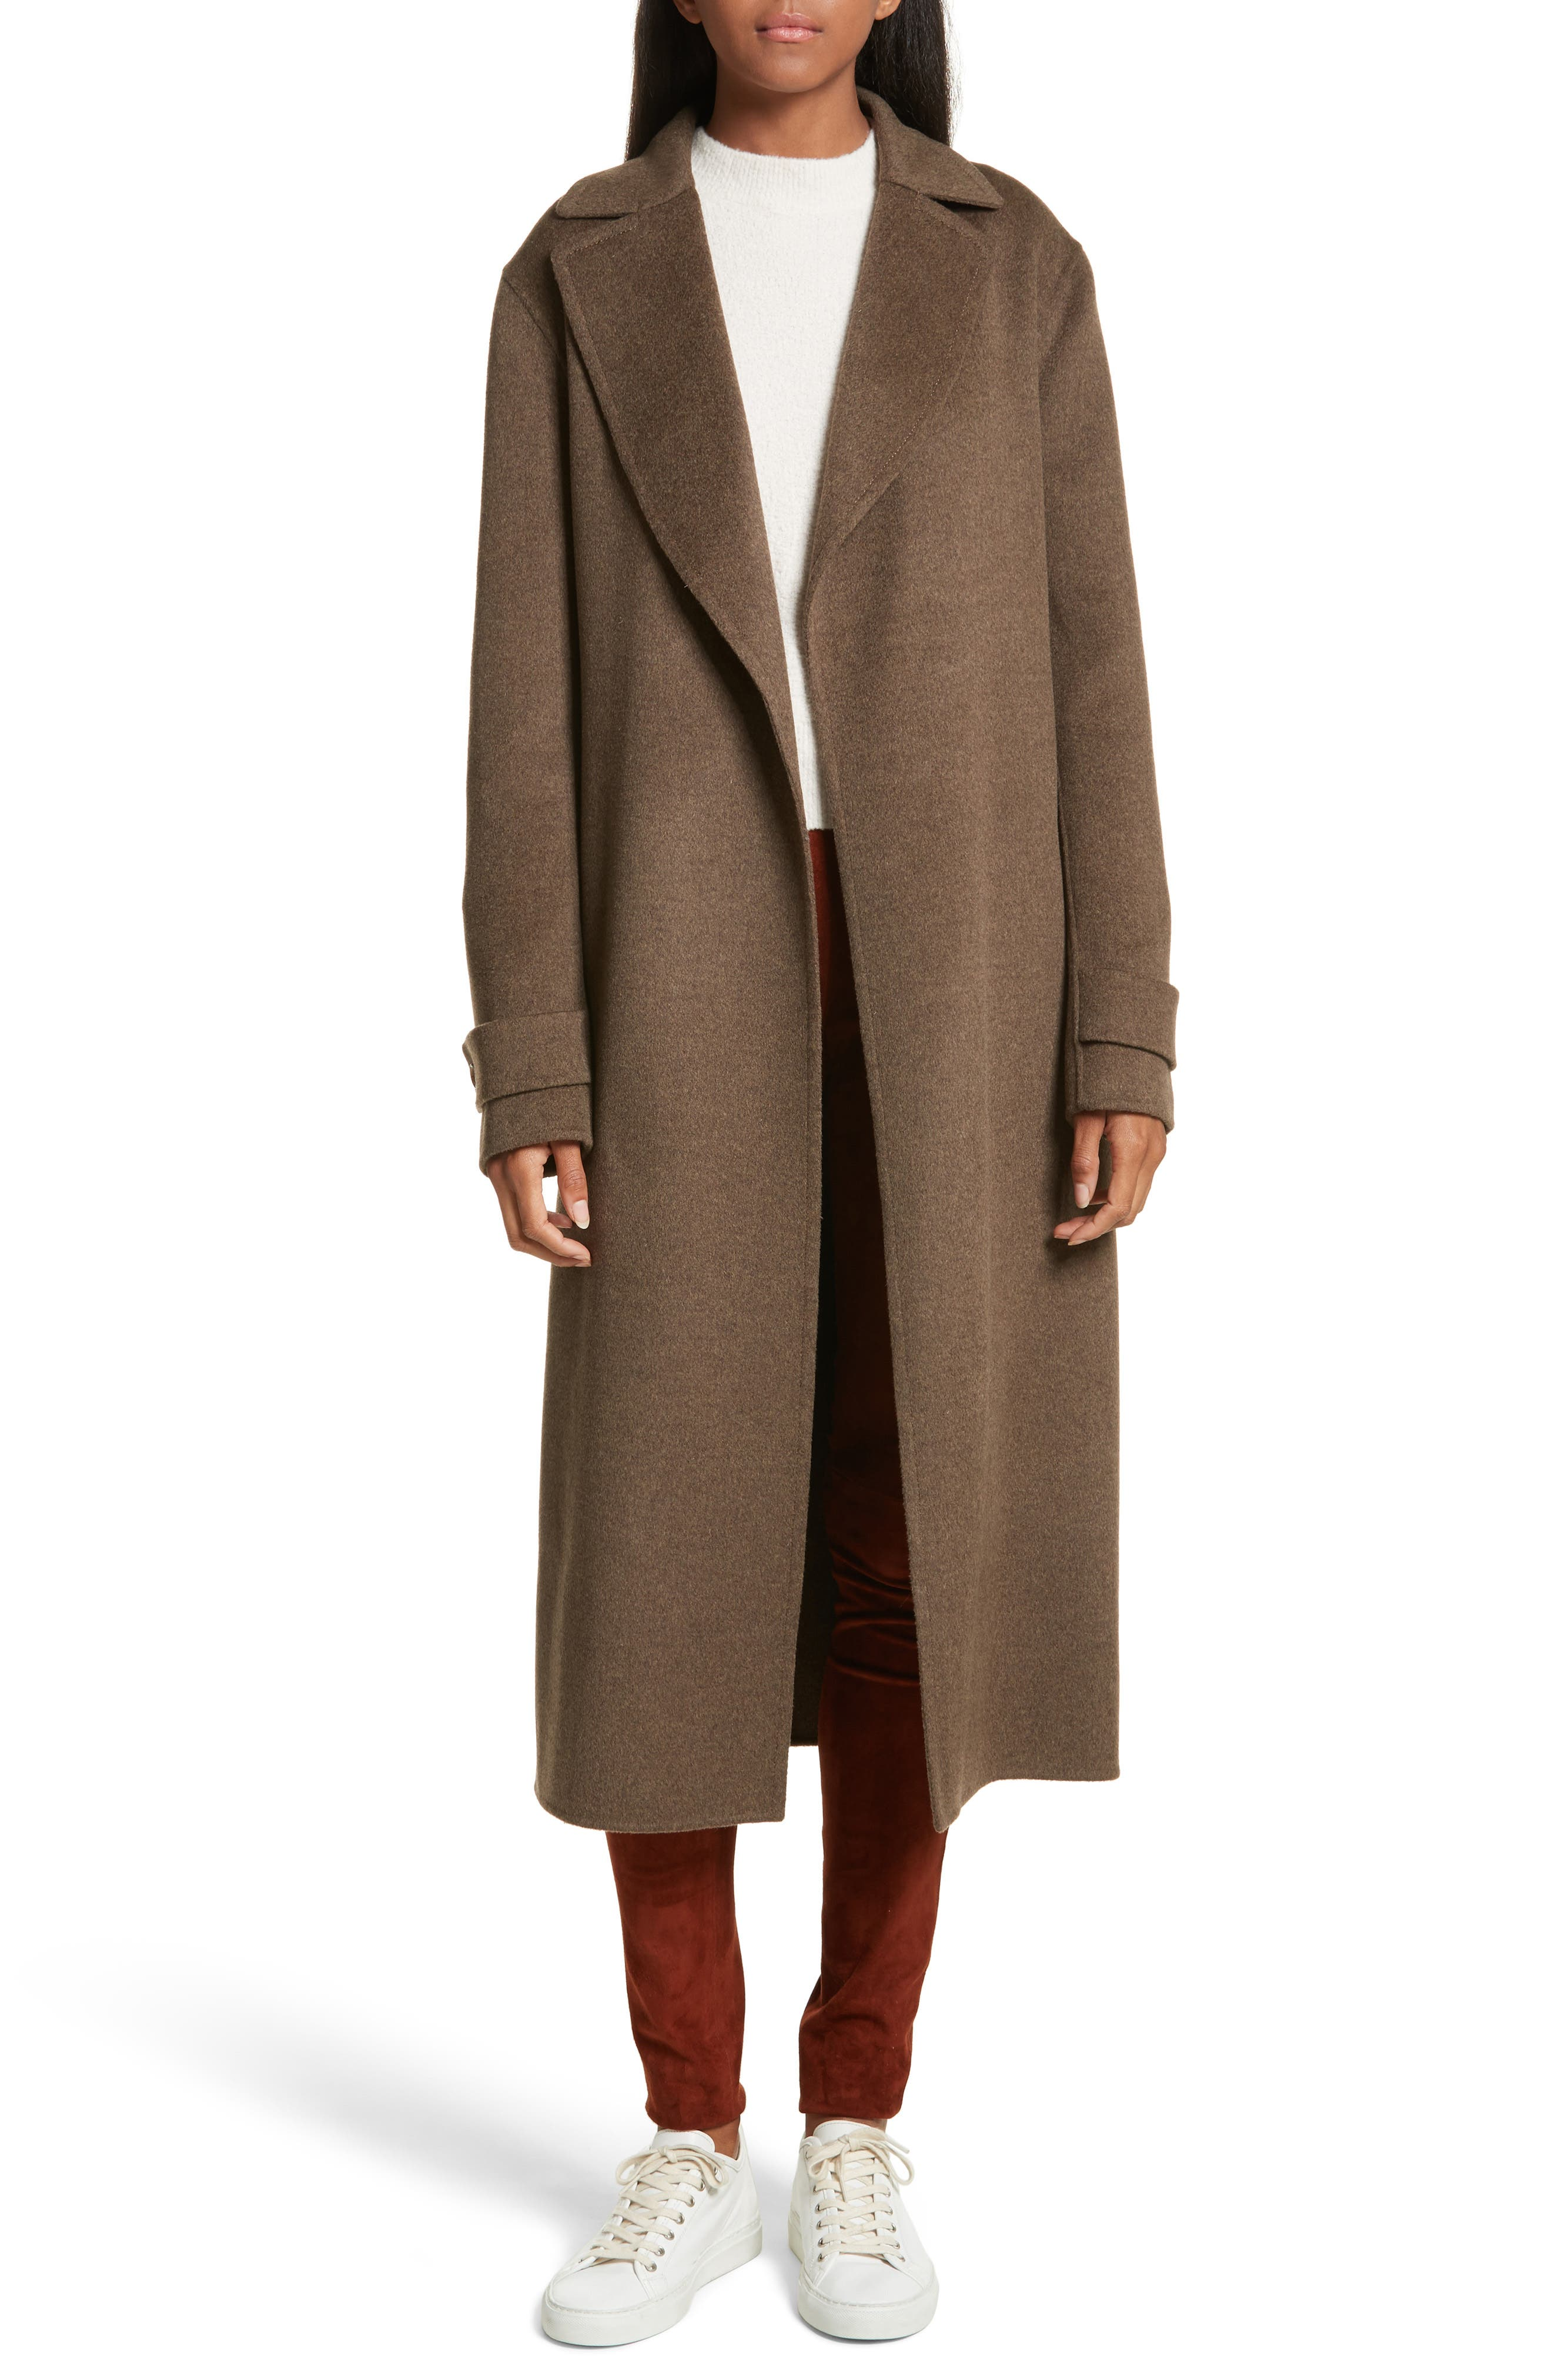 Dale Double-Face Wool & Cashmere Coat,                         Main,                         color, Military